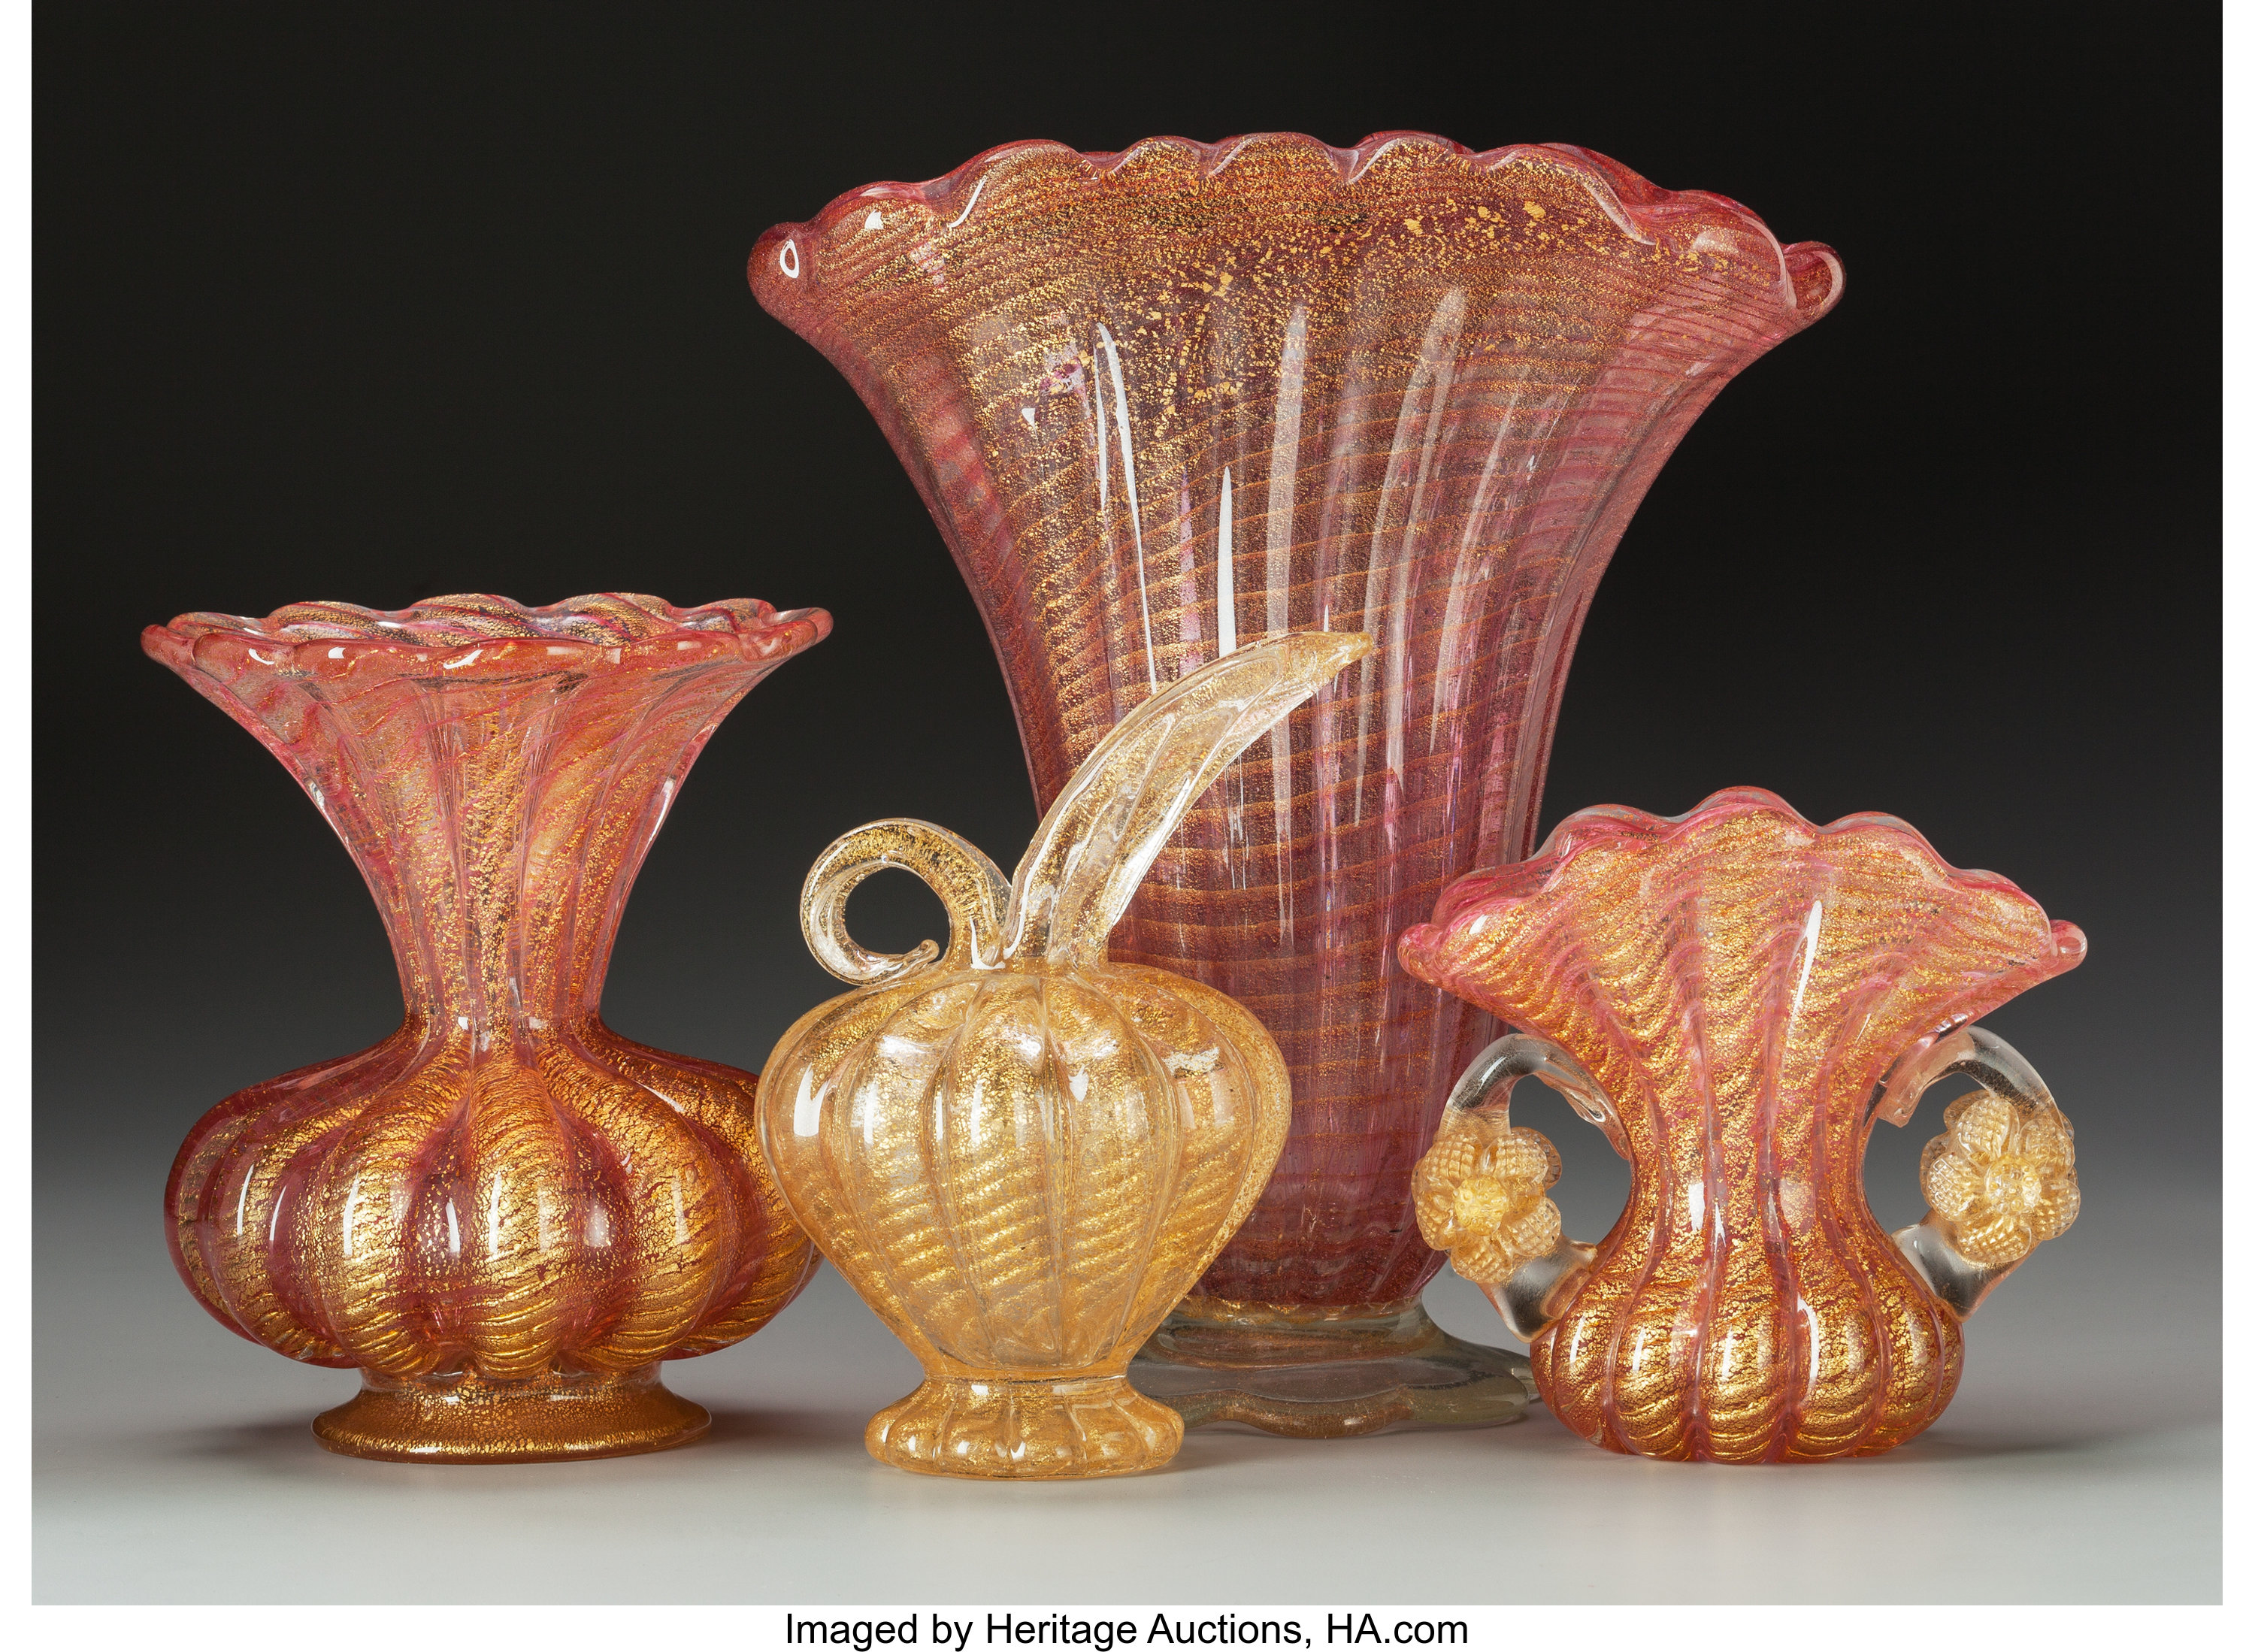 Four Barovier Toso Coronado D Oro Glass Table Articles Circa Lot 65290 Heritage Auctions